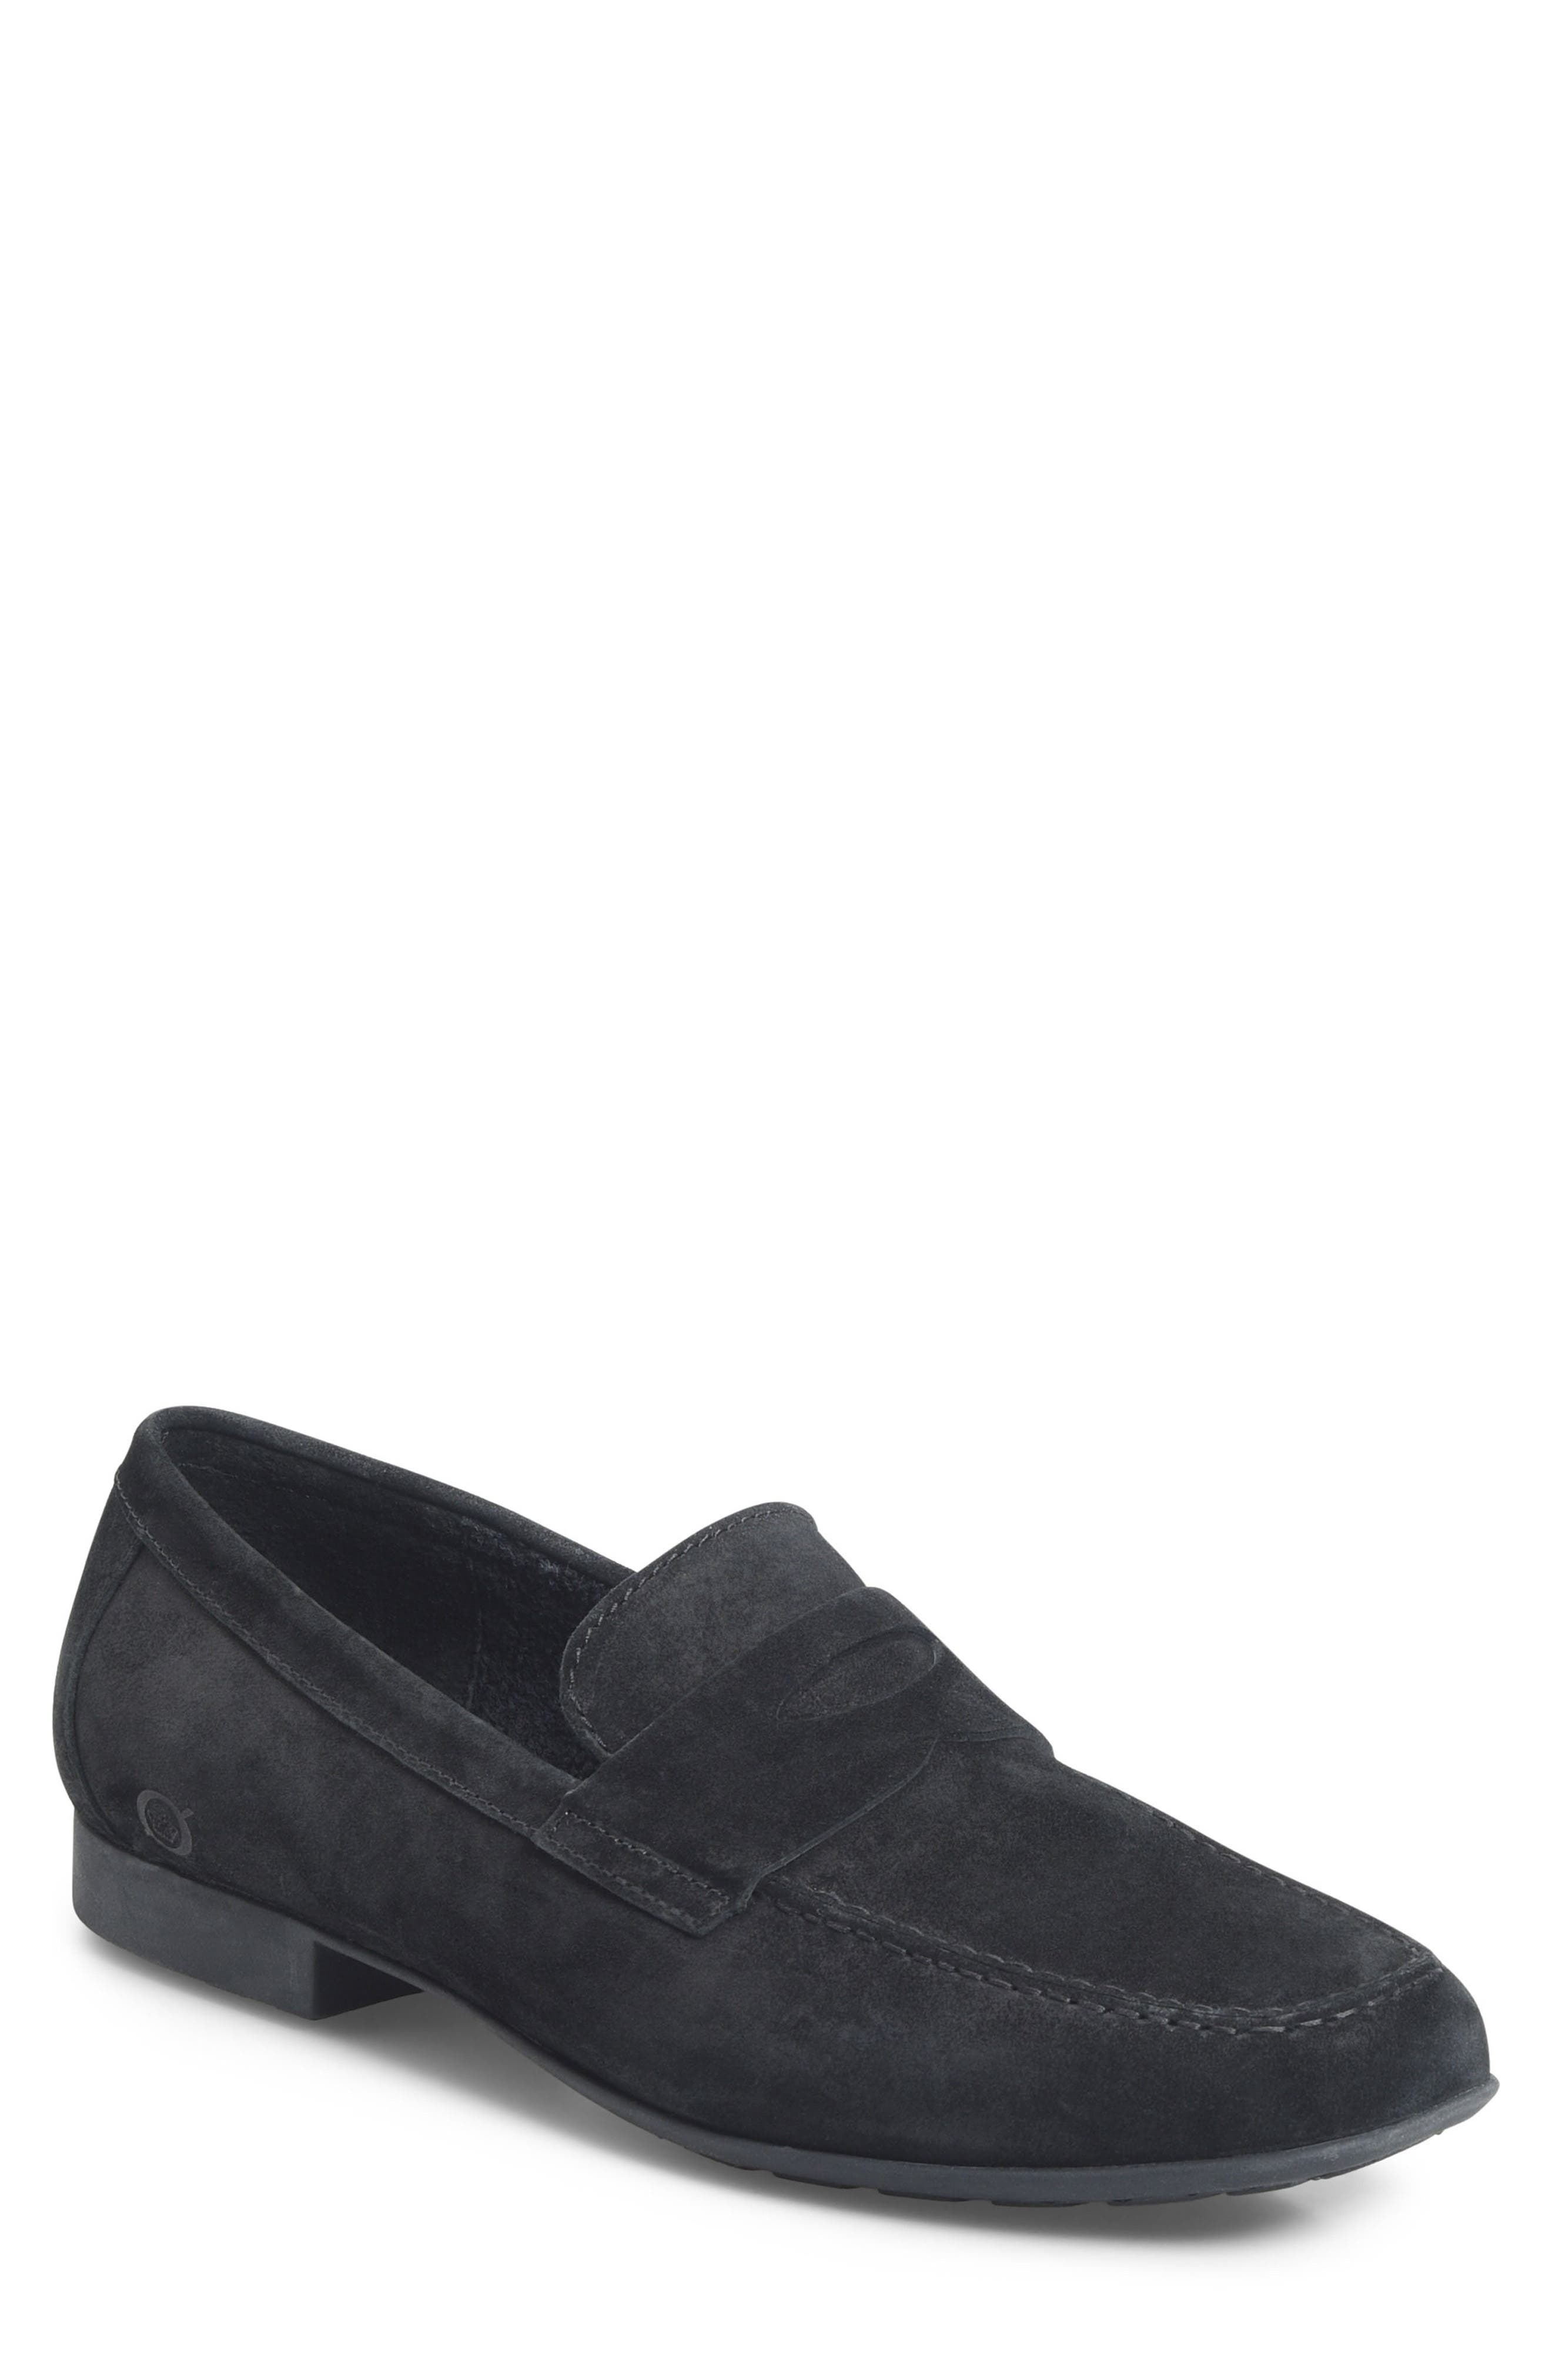 'Dave' Penny Loafer,                         Main,                         color, 003